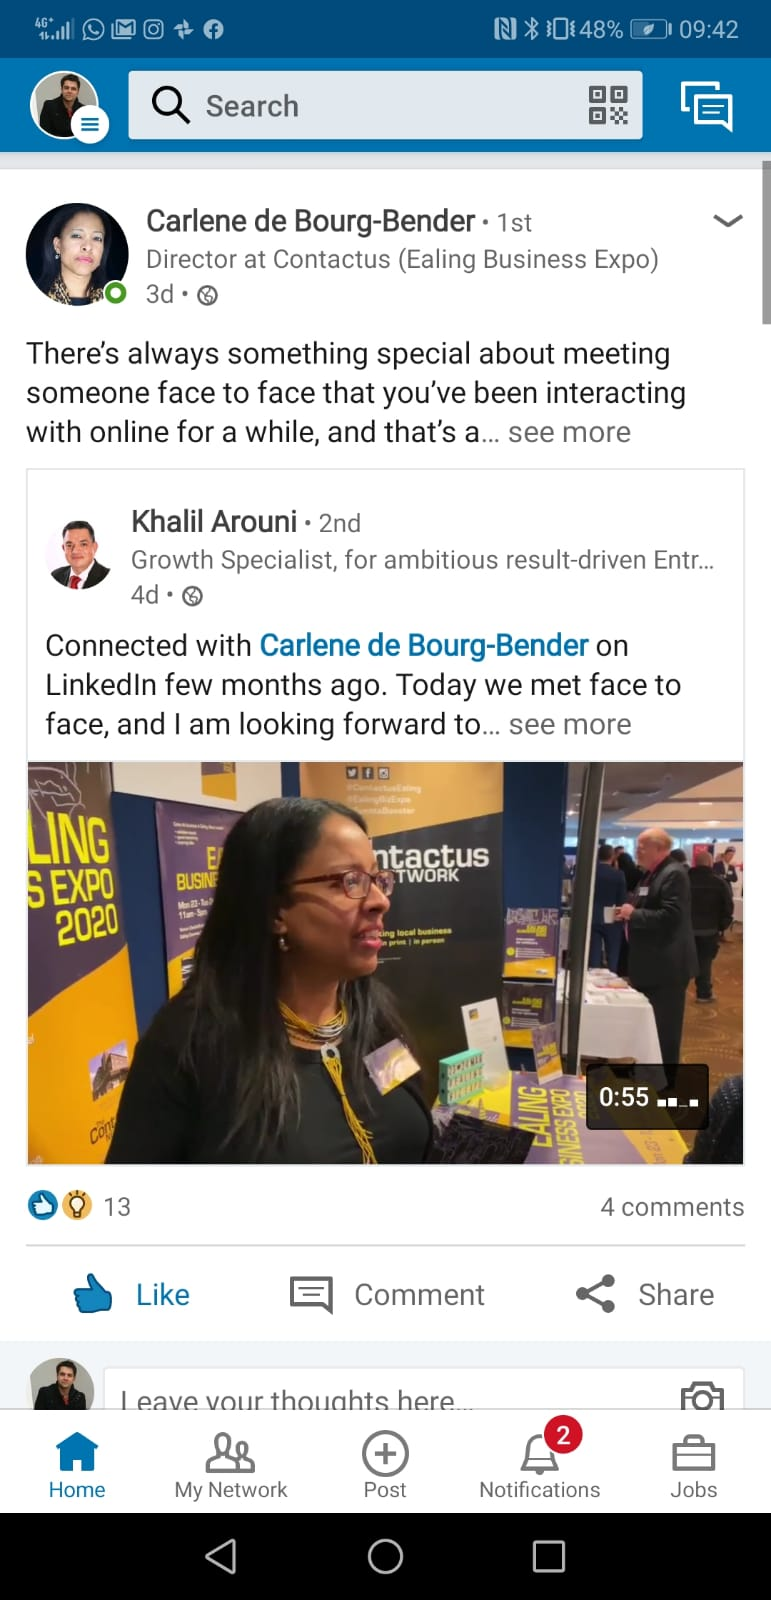 LinkedIn 101: How To Grow Your Network 6